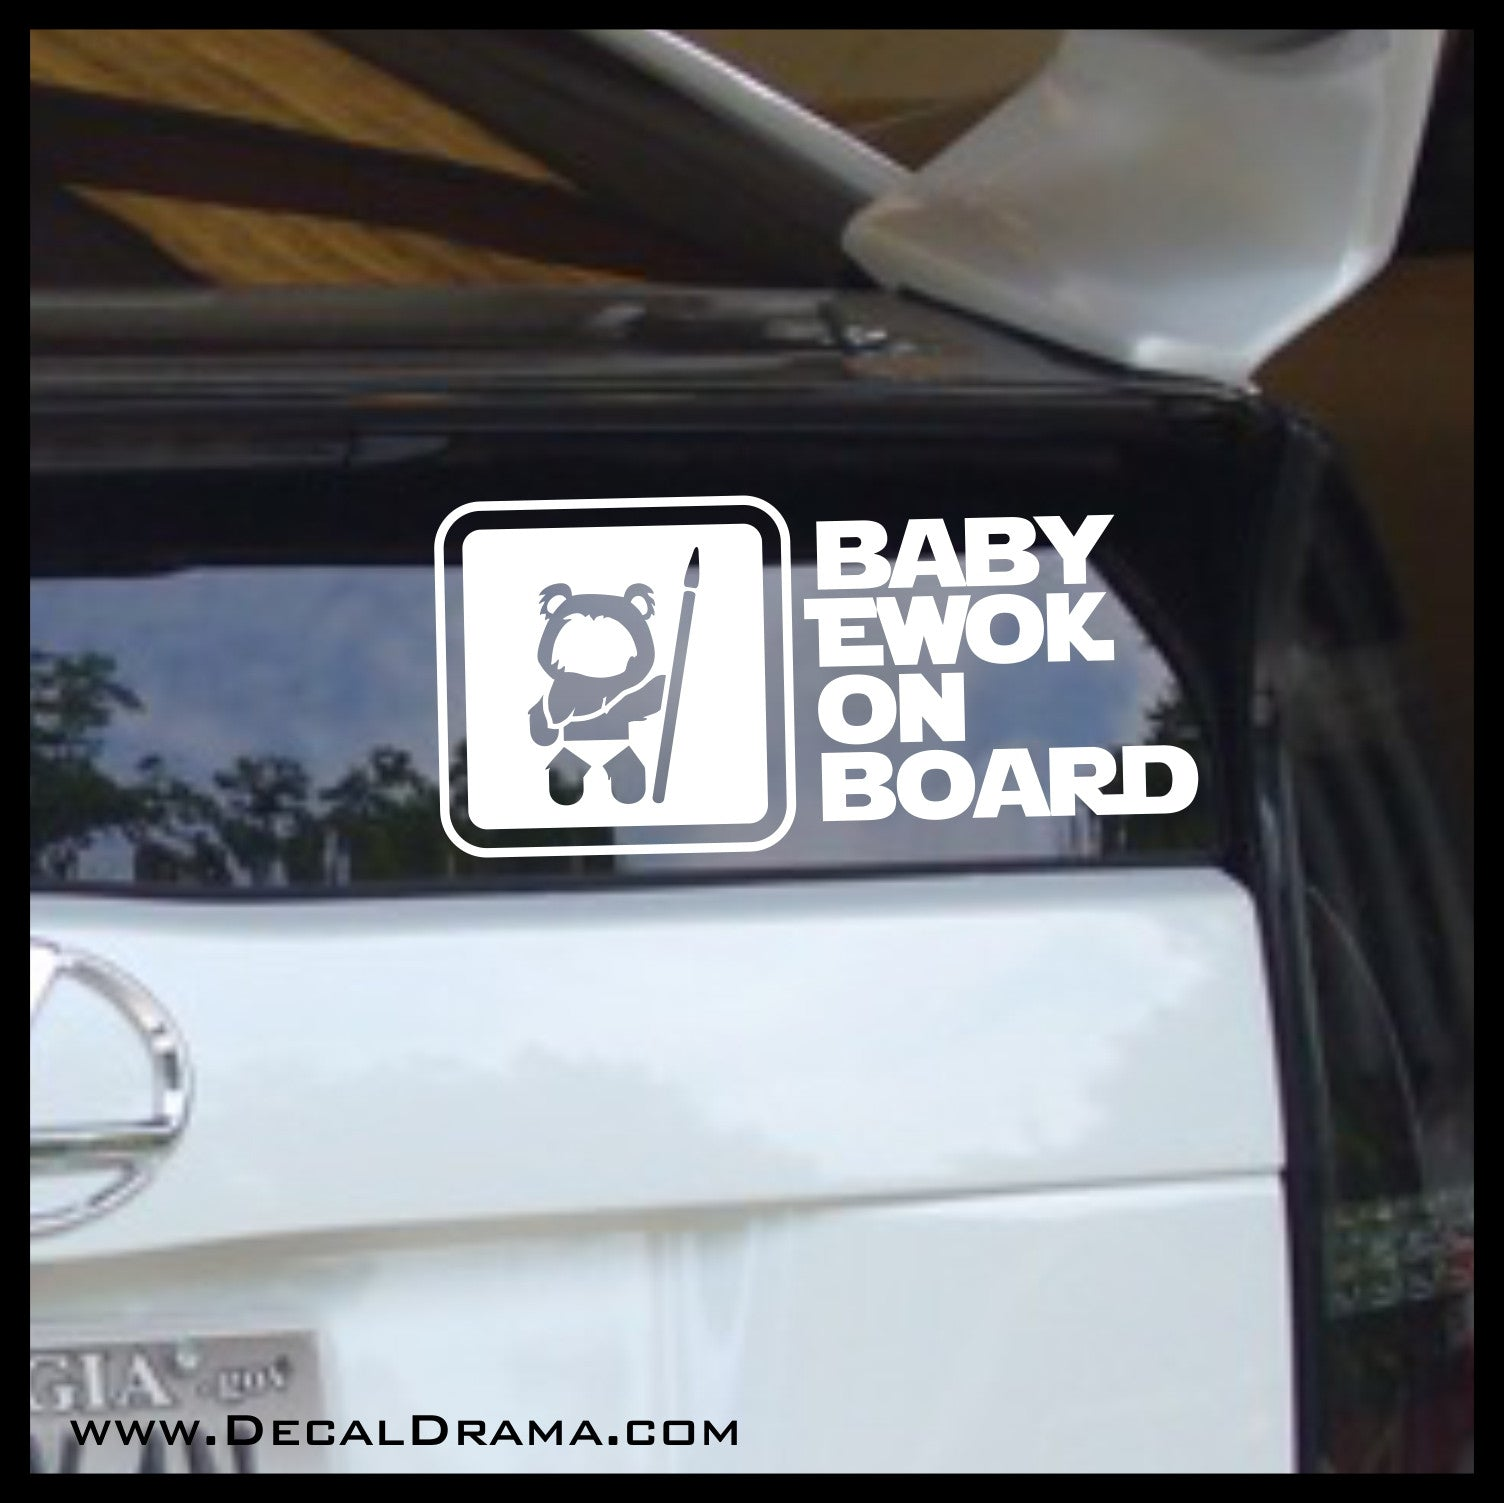 Baby Ewok on Board, Star Wars-Inspired Fan Art Vinyl Wall Decal